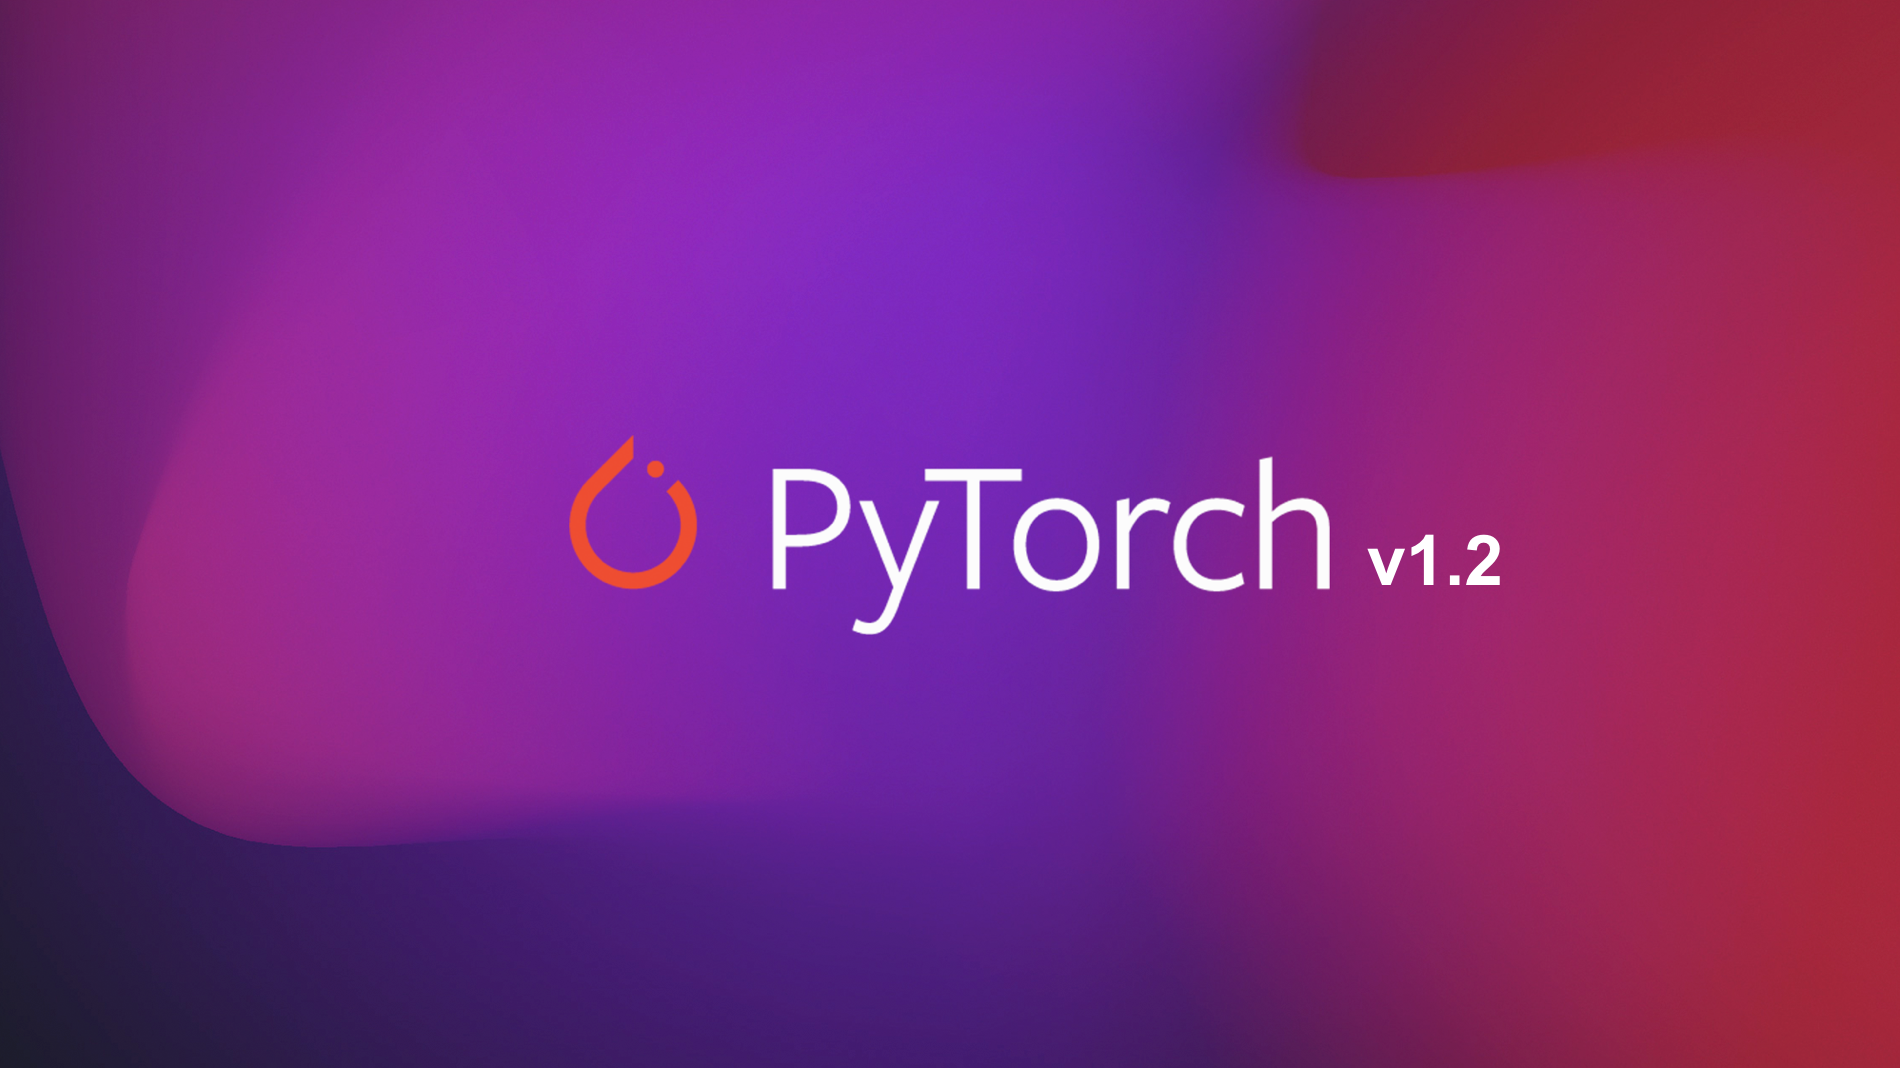 PyTorch 1 2 Supports Transformer and Tensorboard